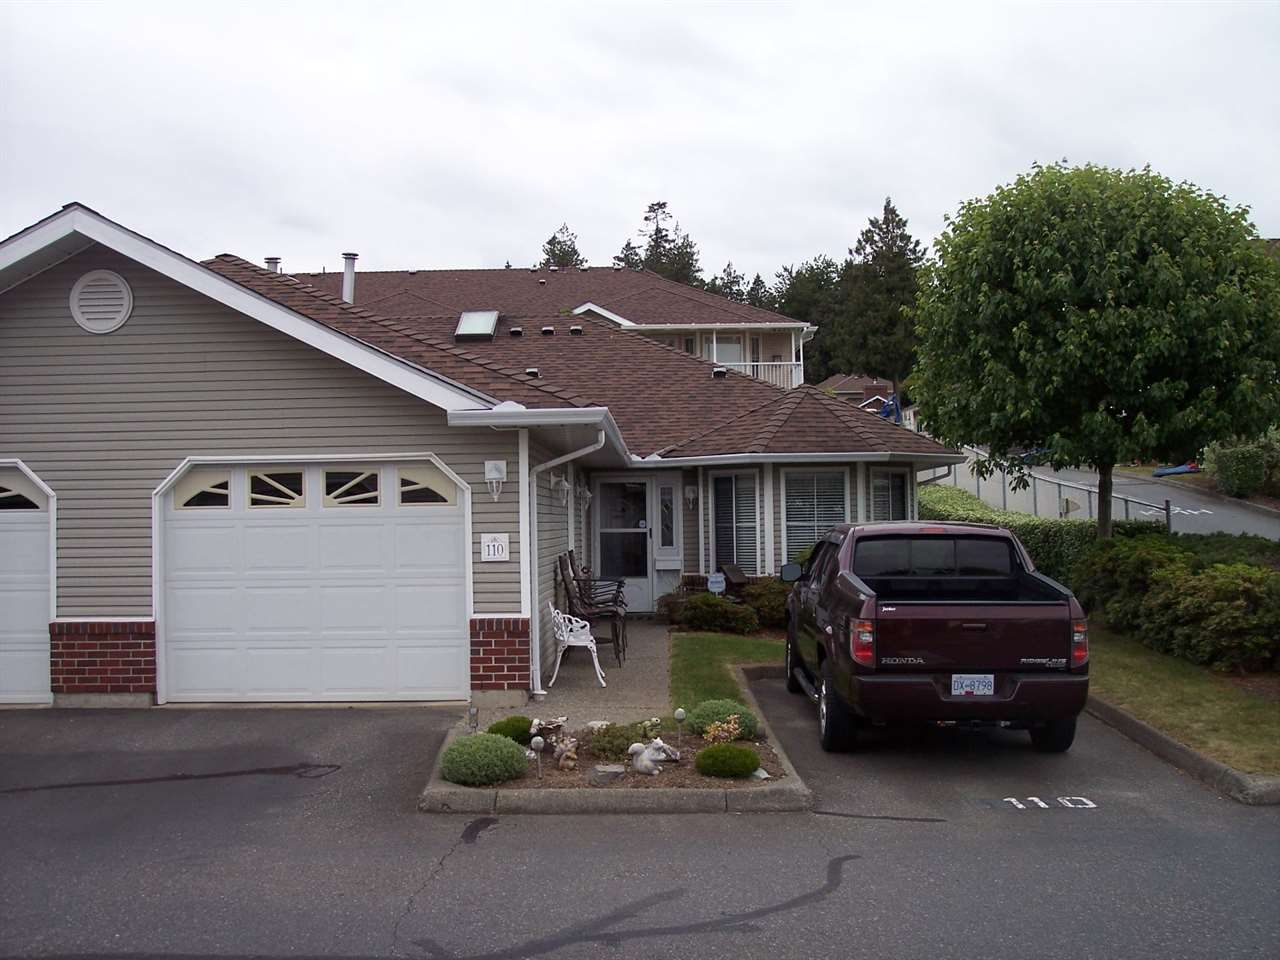 """Main Photo: 110 1973 WINFIELD Drive in Abbotsford: Abbotsford East Townhouse for sale in """"BELMONT RIDGE"""" : MLS®# R2070637"""